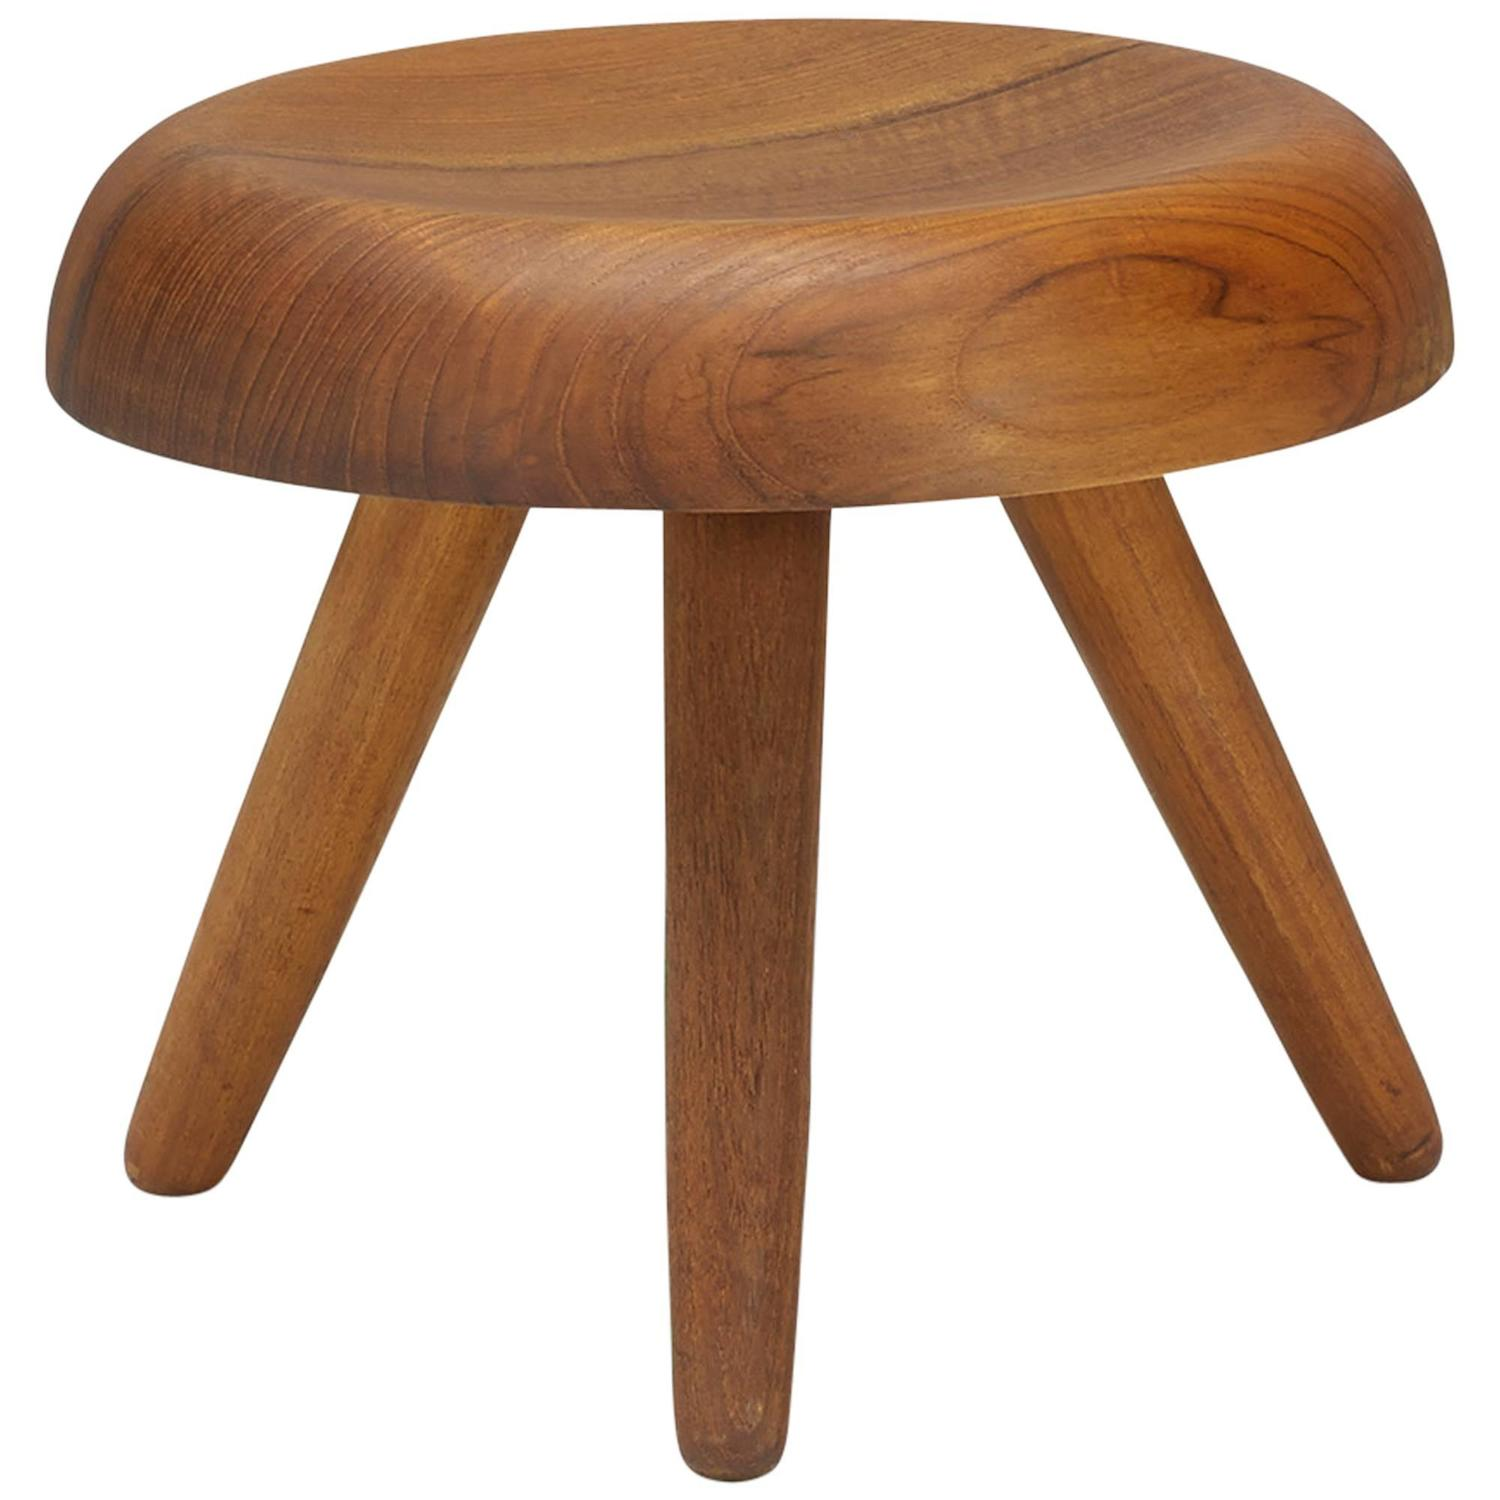 Butterfly chair sori yanagi - Monjiro Stool By Sori Yanagi For Bc Kobo